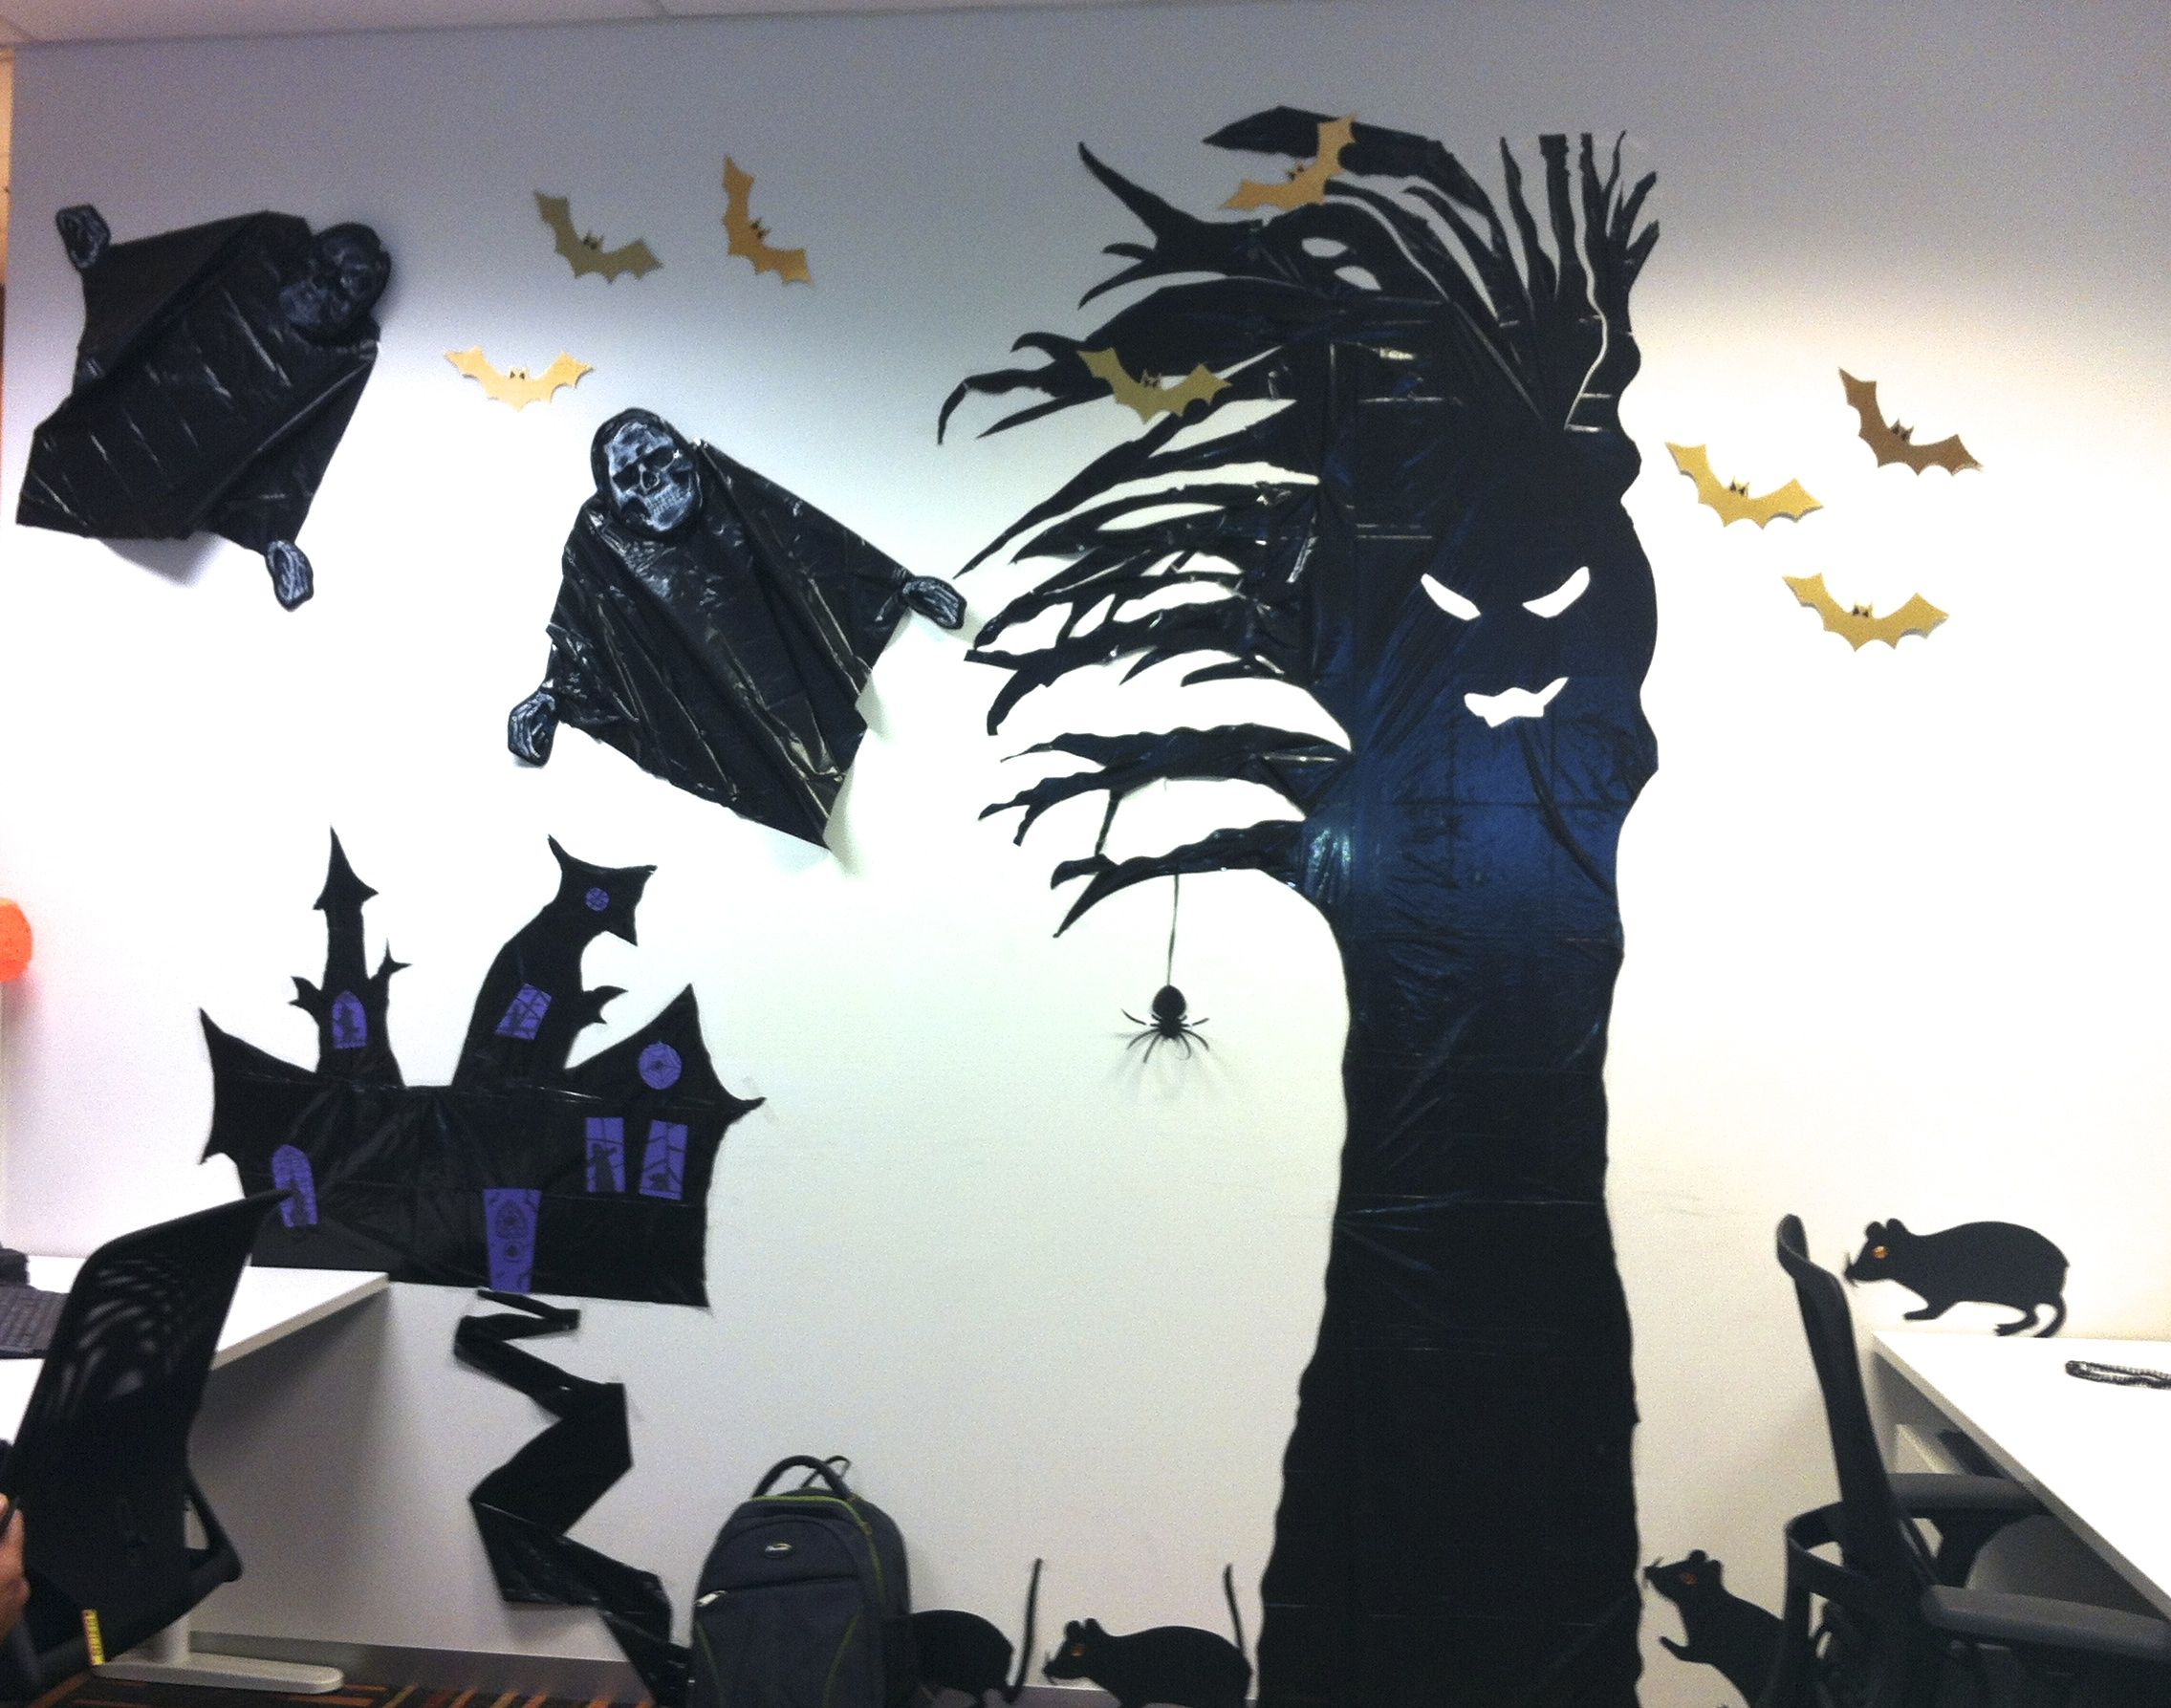 Halloween Decorations at the office made from black plastic - halloween decorations for the office